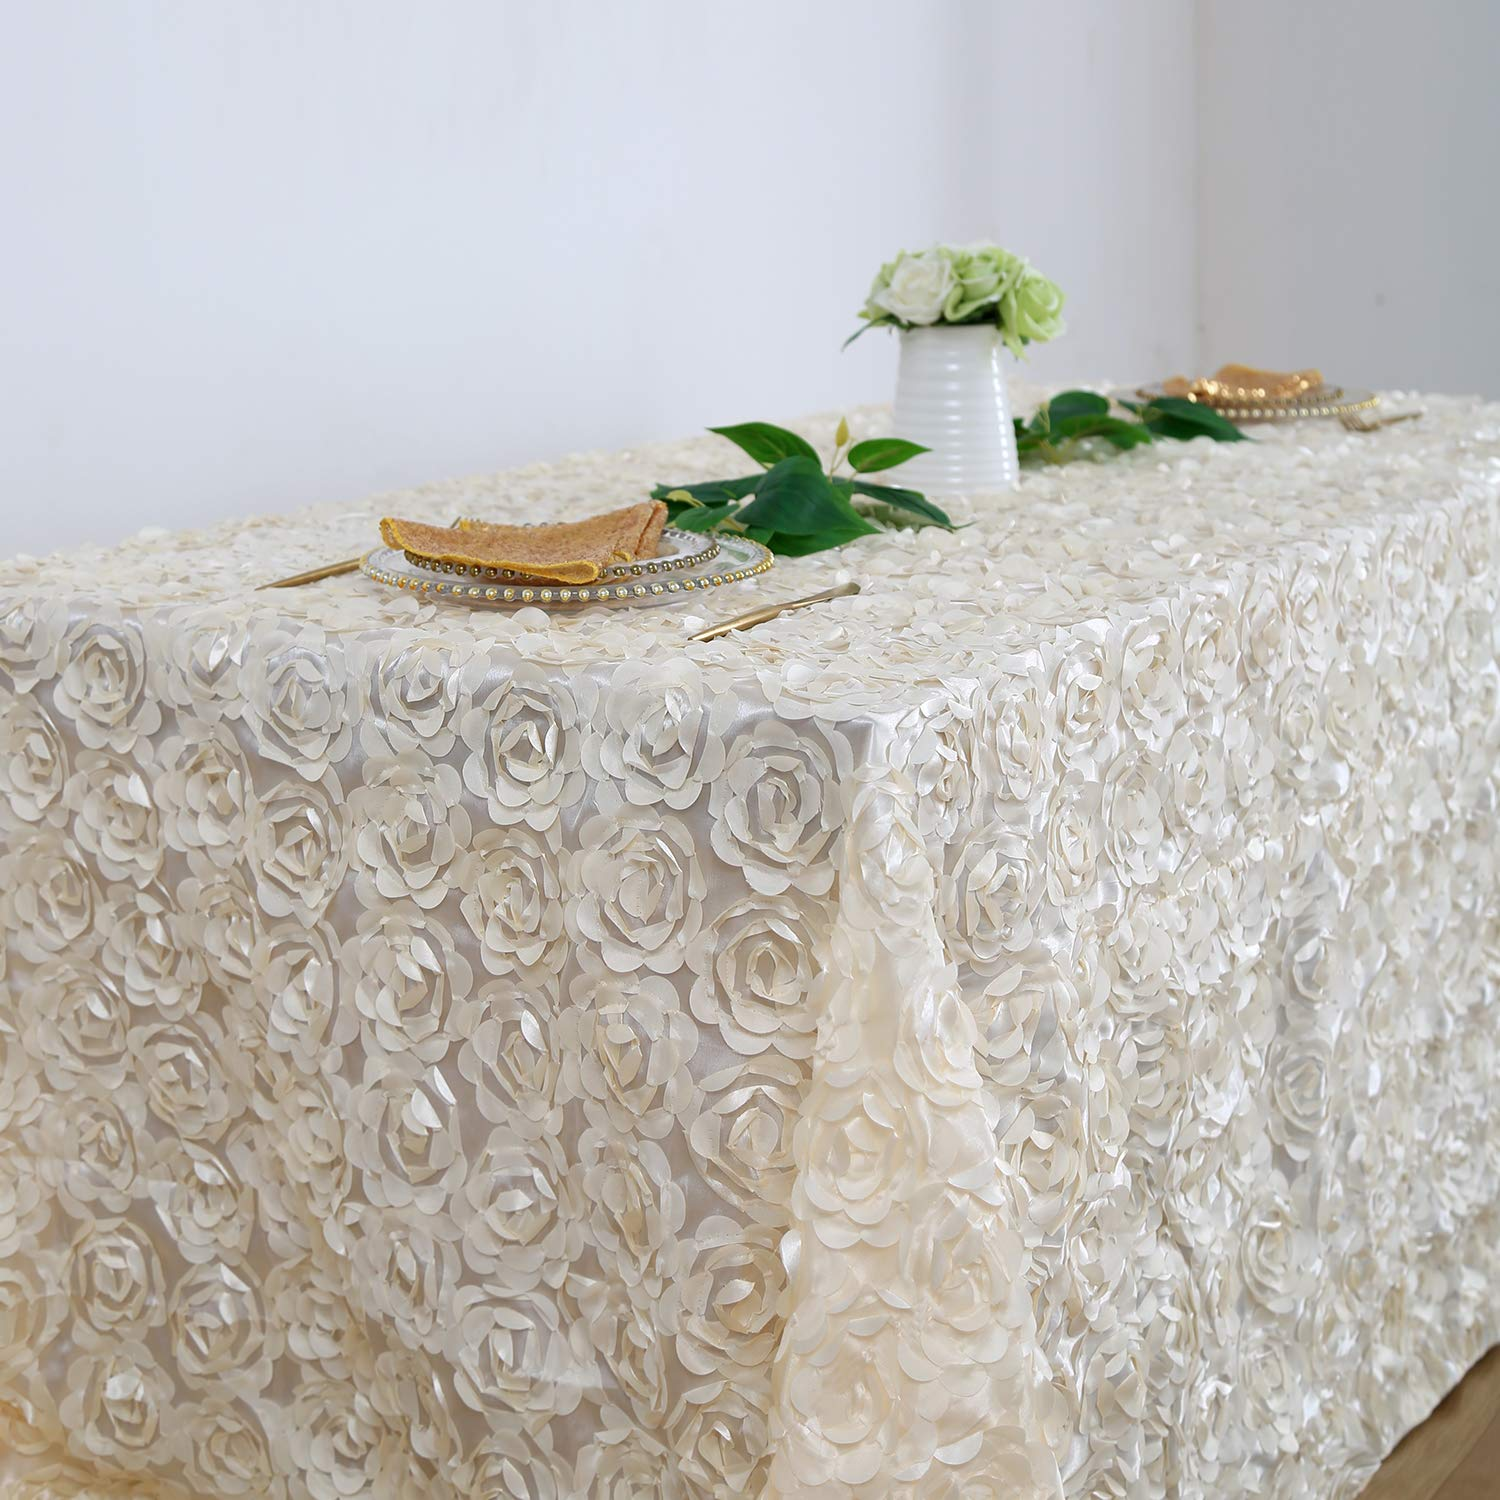 Fanqisi SoarDream Rosette Fabric Rectangular Tablecloth Ivory Tablecloth 90x90 inches for Romantic for Wedding Table Bridal Shower Reception Decor